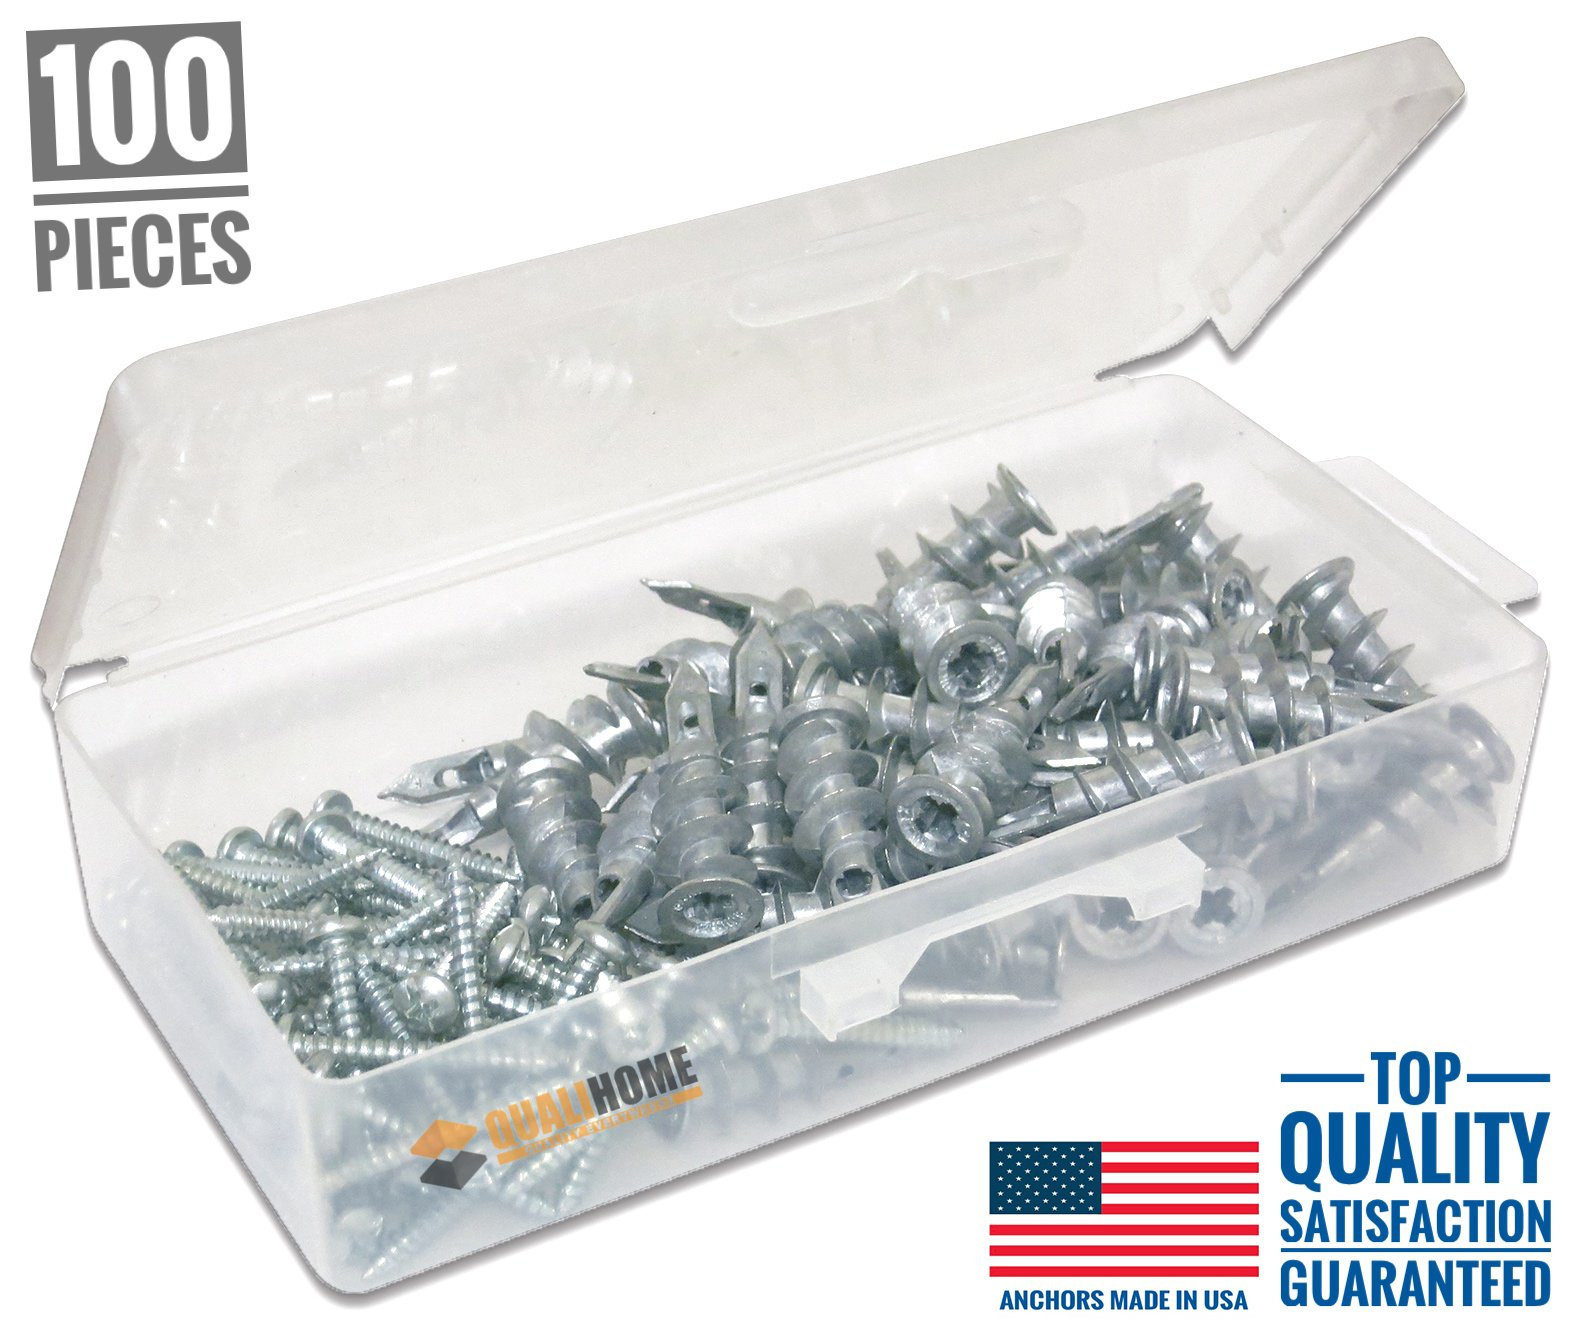 #1 Best Quality Zinc Self Drilling Drywall Anchors with Screws Kit, 100 Pieces All Together by Qualihome